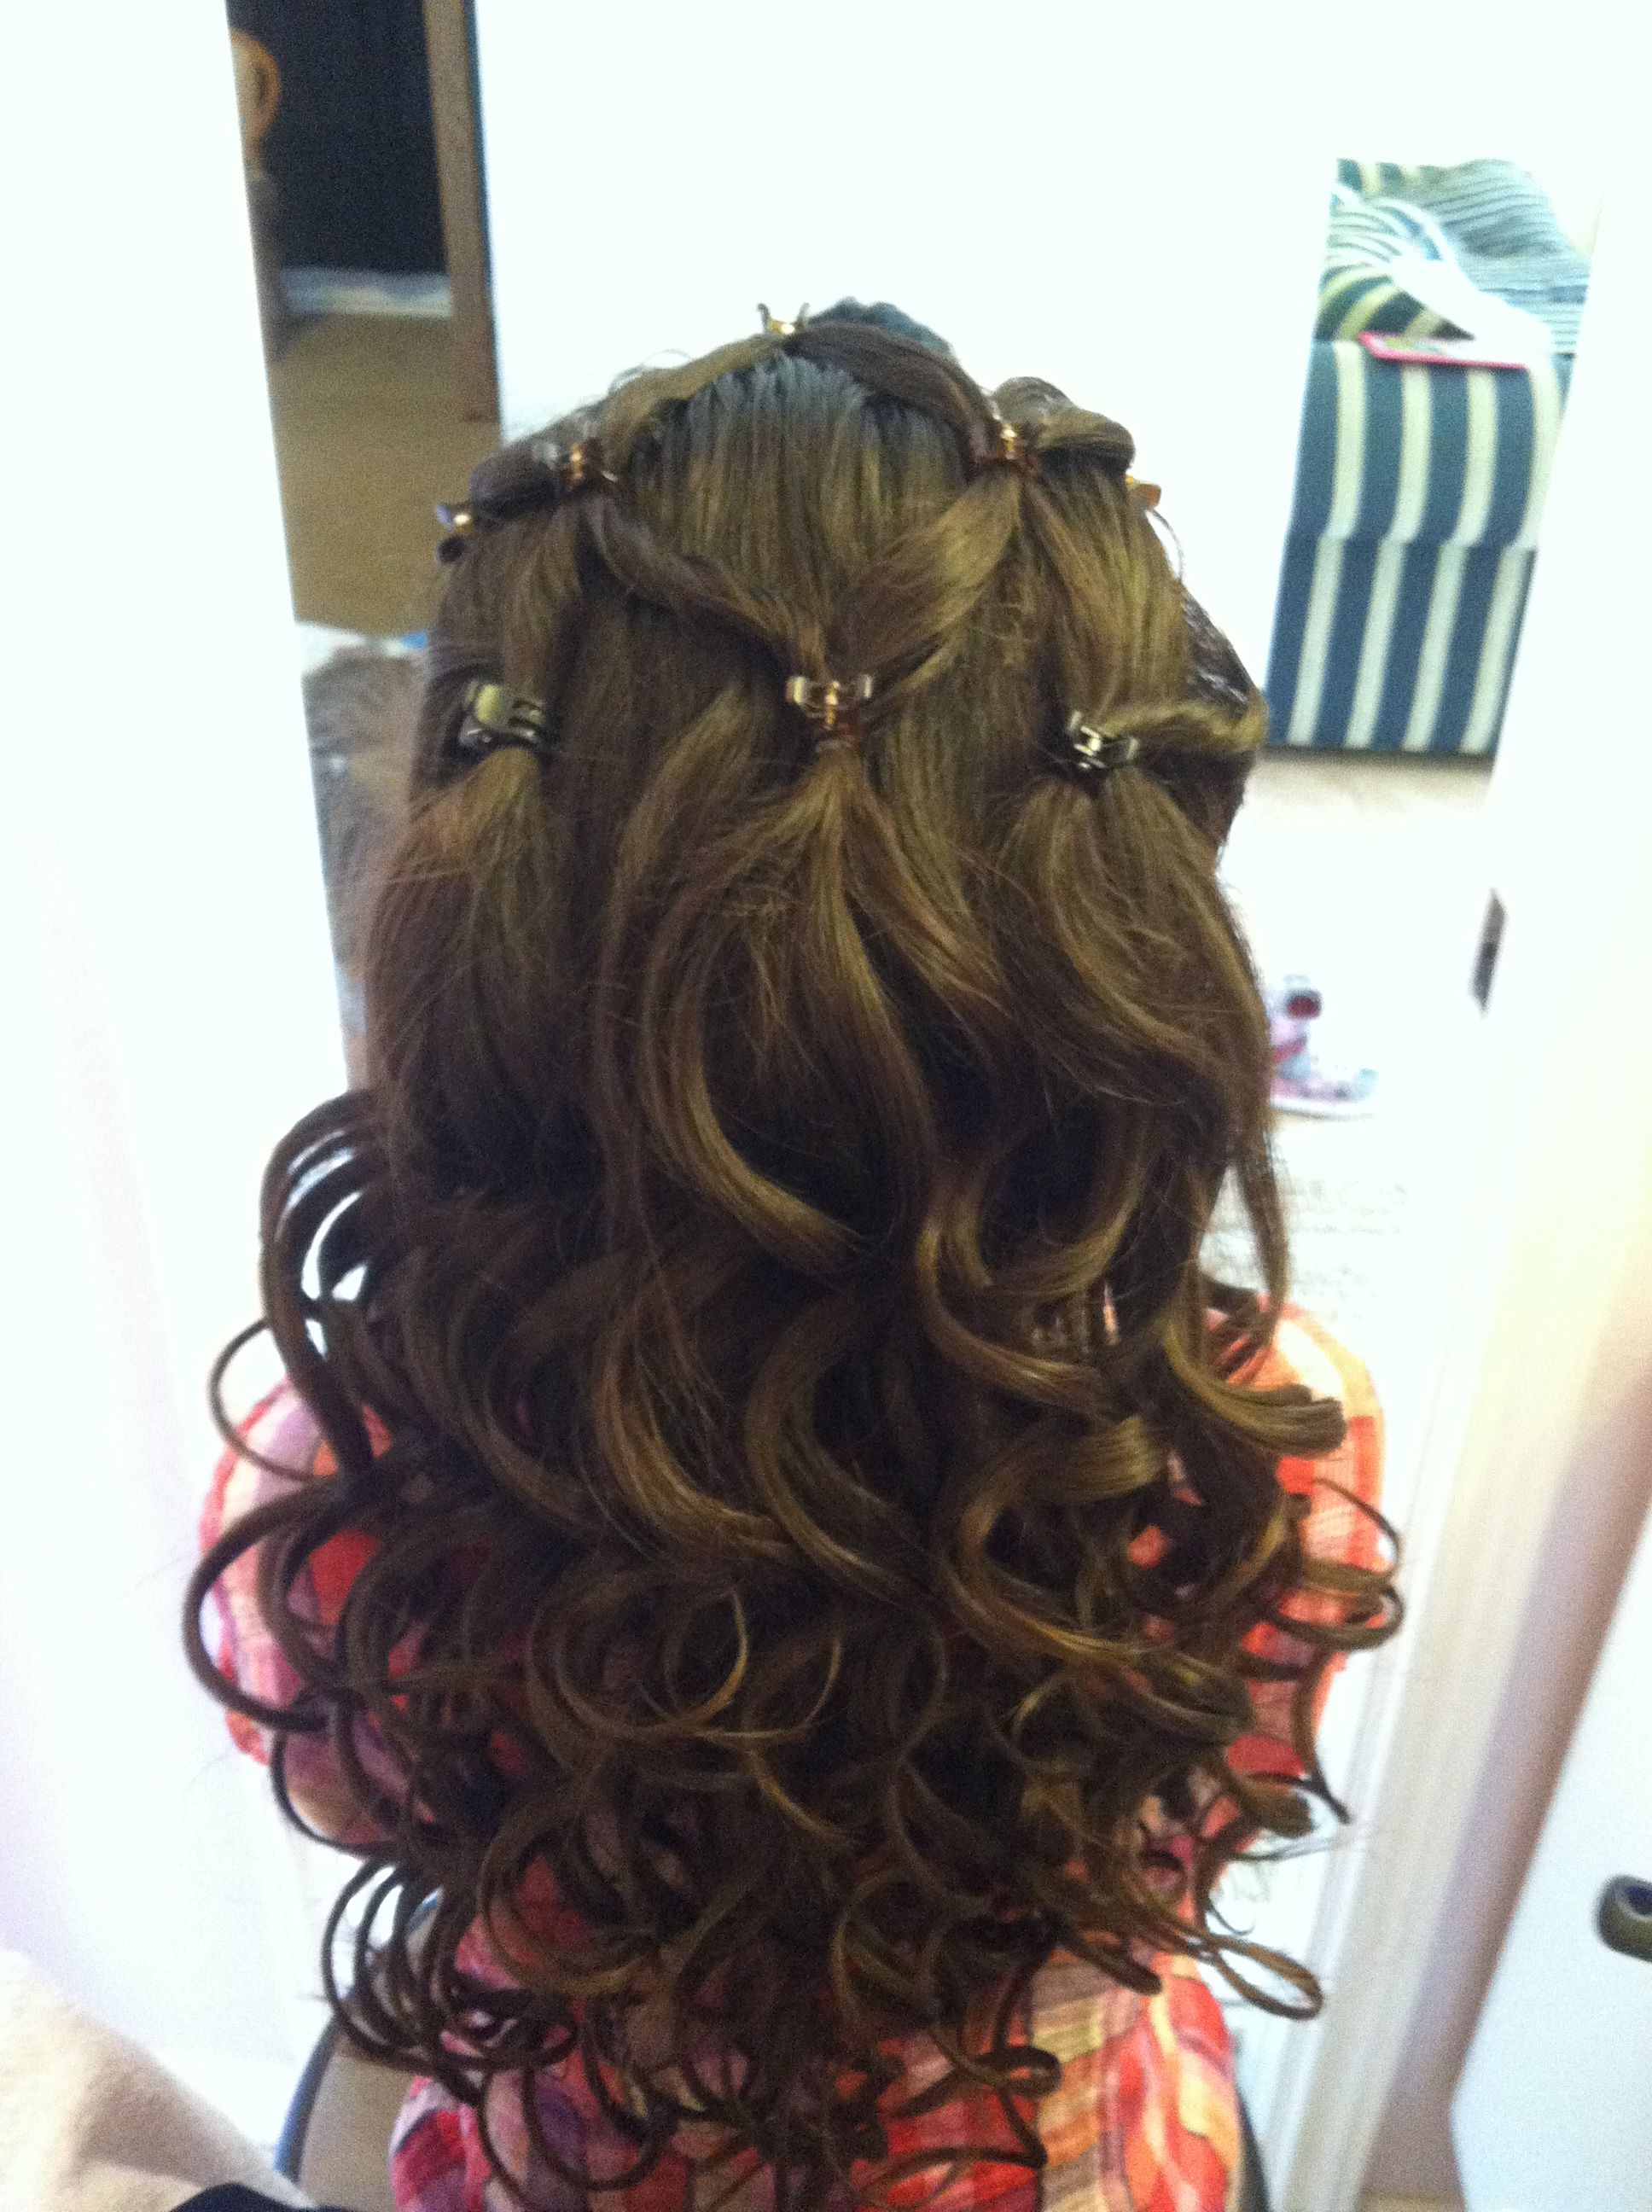 Flower Girl Hairstyles For Wedding: Flower Girl Hairstyle. I Jut Did My Niece Mia's Hair For A